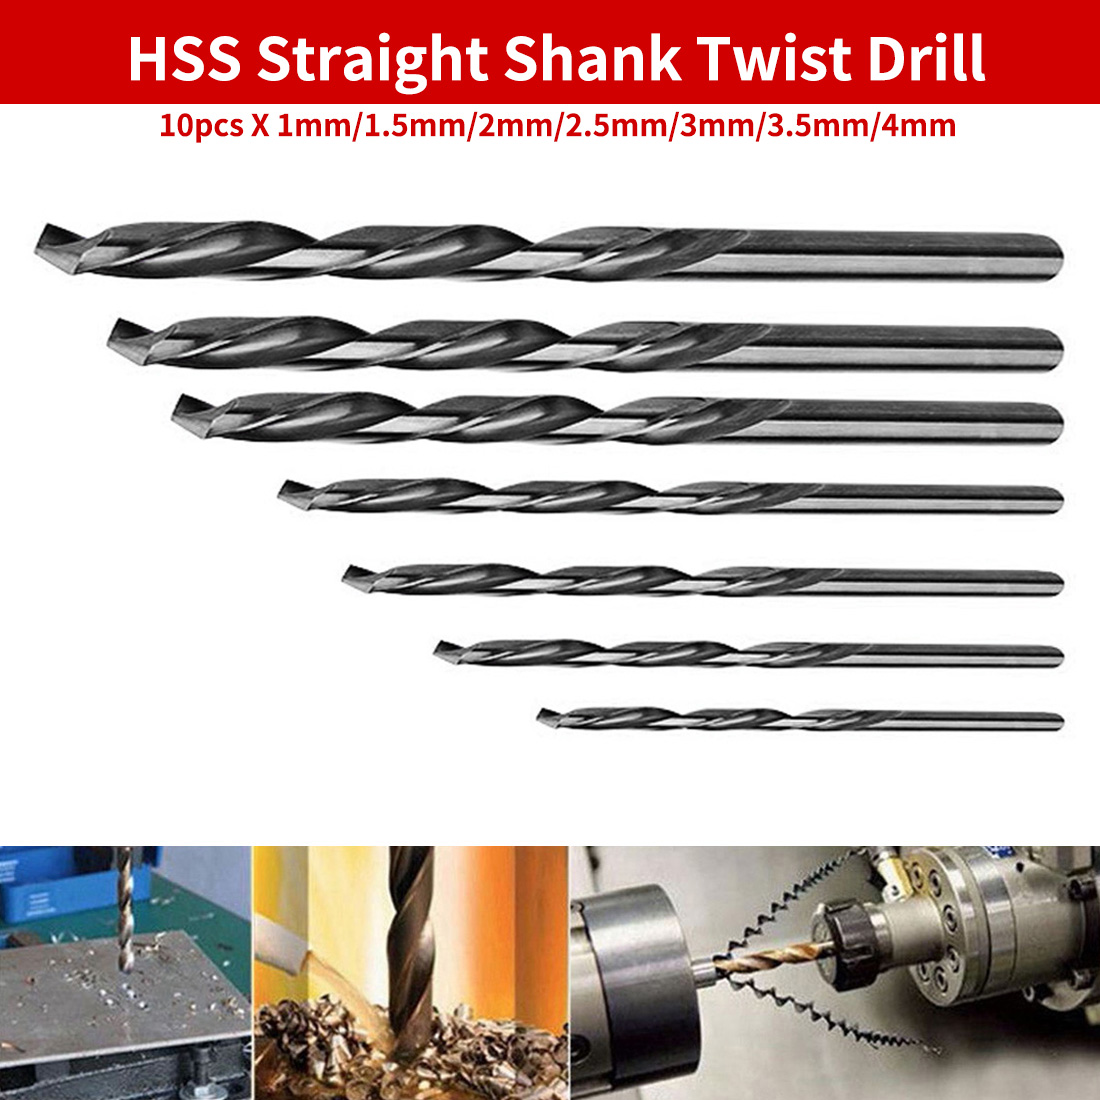 10pcs Twist Drill Bits Set HSS Mini Drill Straight Shank For PCB/Thin Aluminum/Iron Sheet 1mm/1.5mm/2mm/2.5mm/3mm/3.5mm/4mm